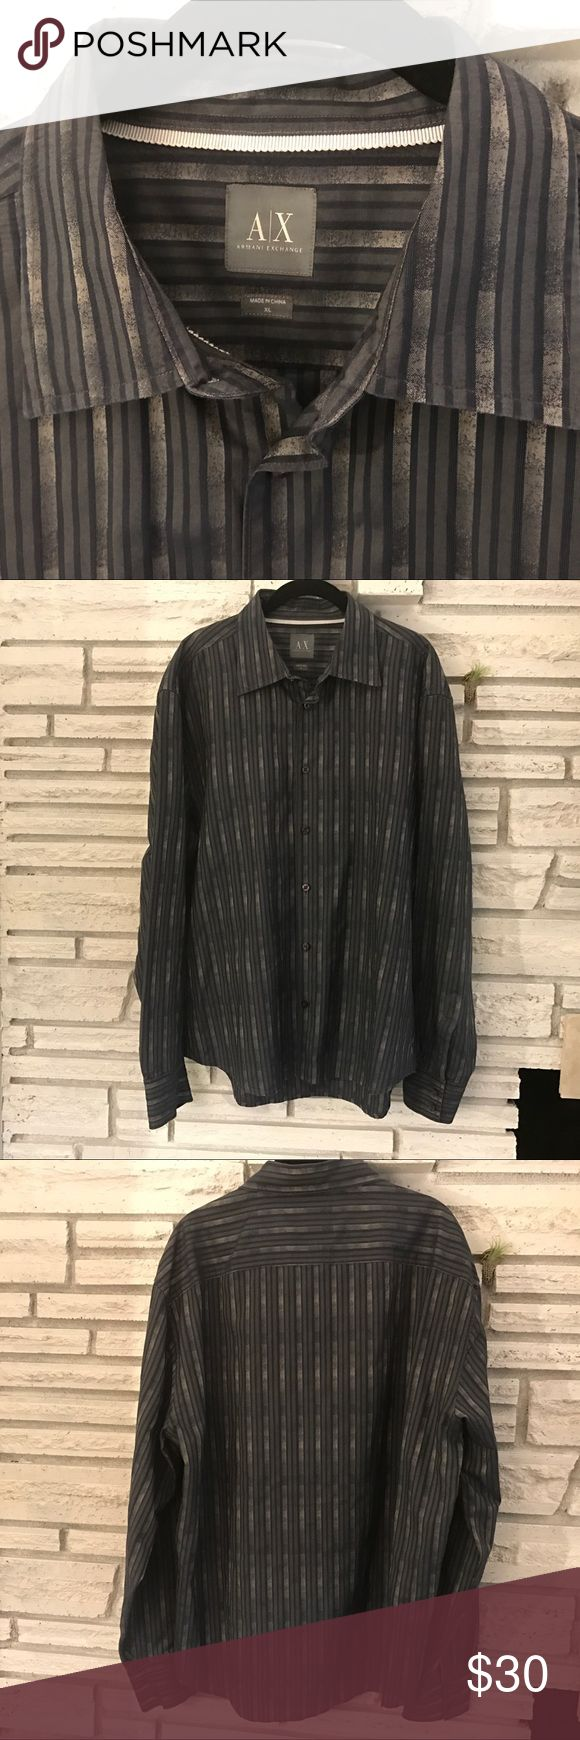 Got a stylish XL guy in your life? This shirt is in excellent Condition. I bought it for my Italian husband but he's inching into the XXL range so this was a little too small.  Looked super attractive on him though ;) I love the silvery metallic detail and cut. Armani Exchange Shirts Dress Shirts